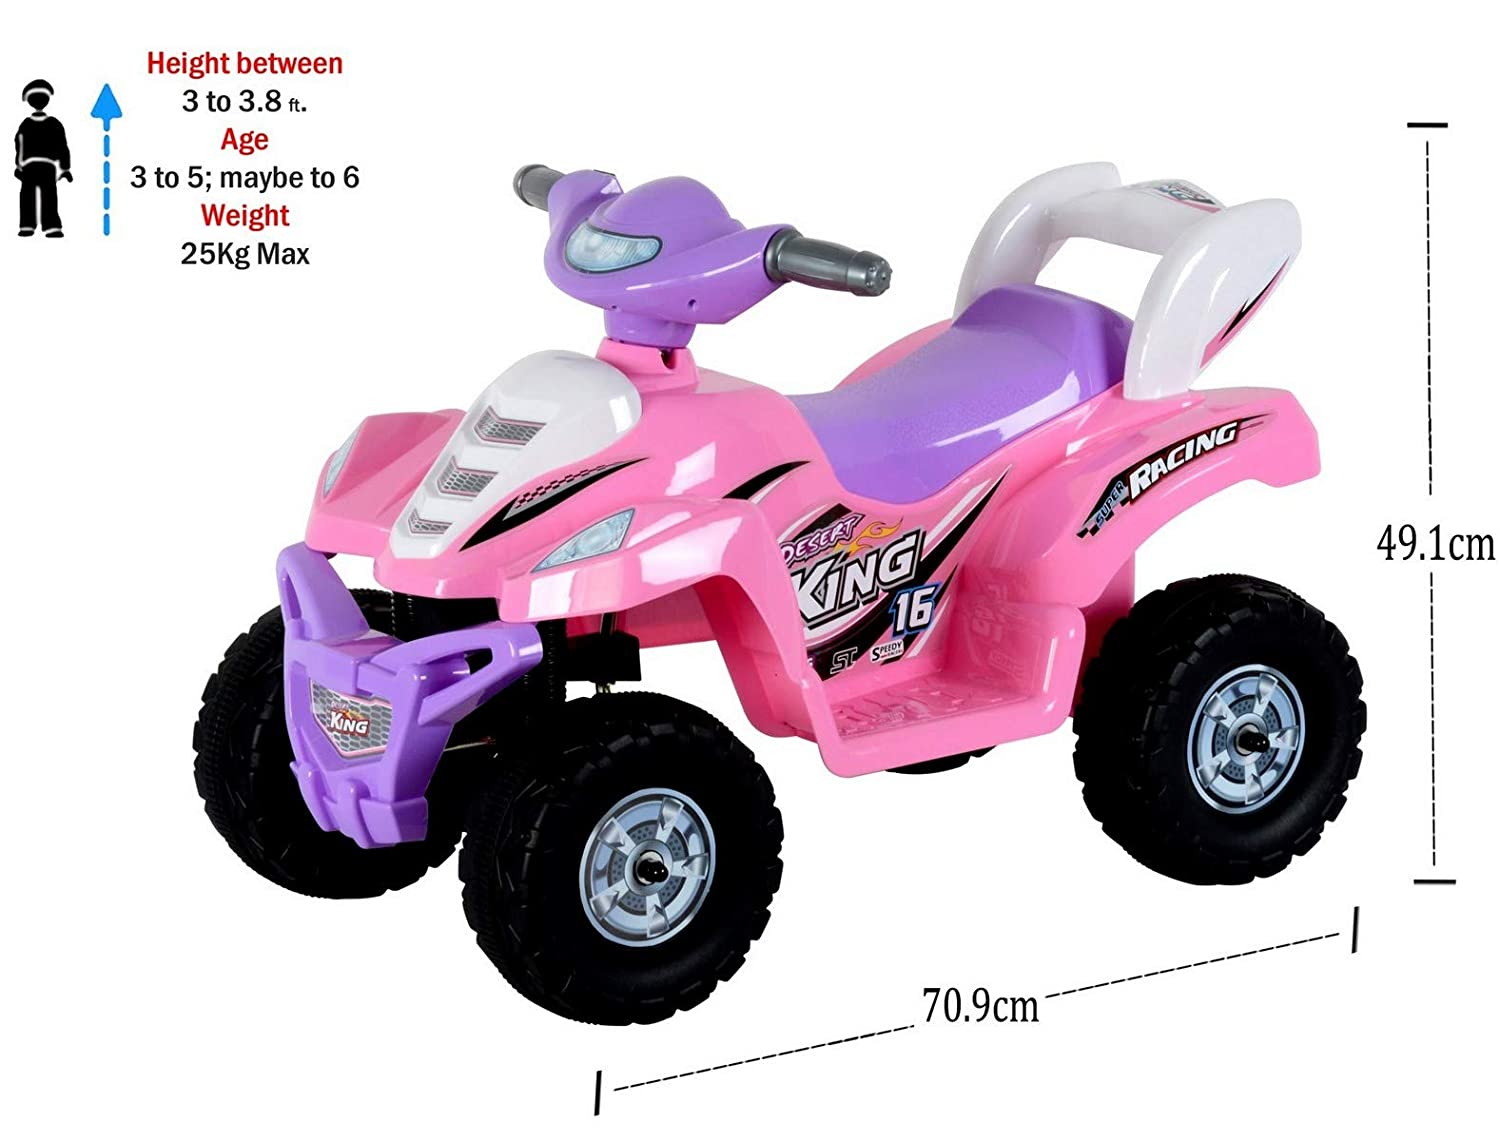 2574603bf7f Buy Toy House Desert King Small ATV Bike 6V Rechargeable Battery Operated  Ride On for kids( 2to 4), Pink Online at Low Prices in India - Amazon.in